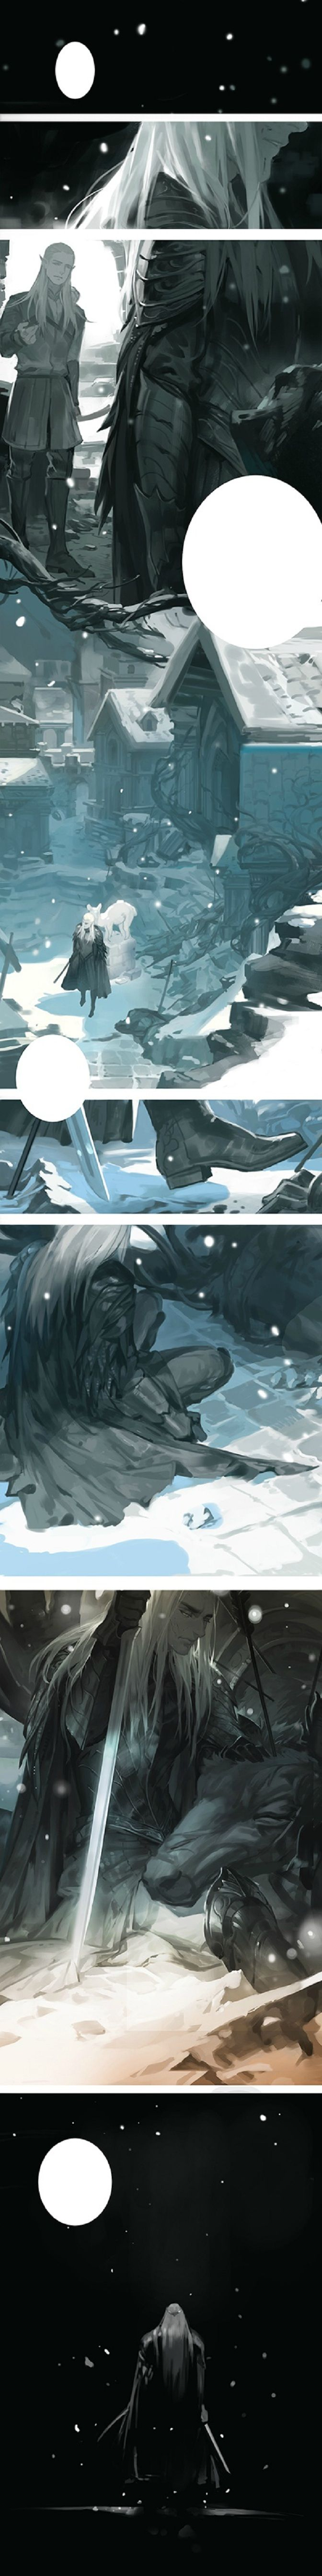 #Thranduil says goodbye to his elk. T_T